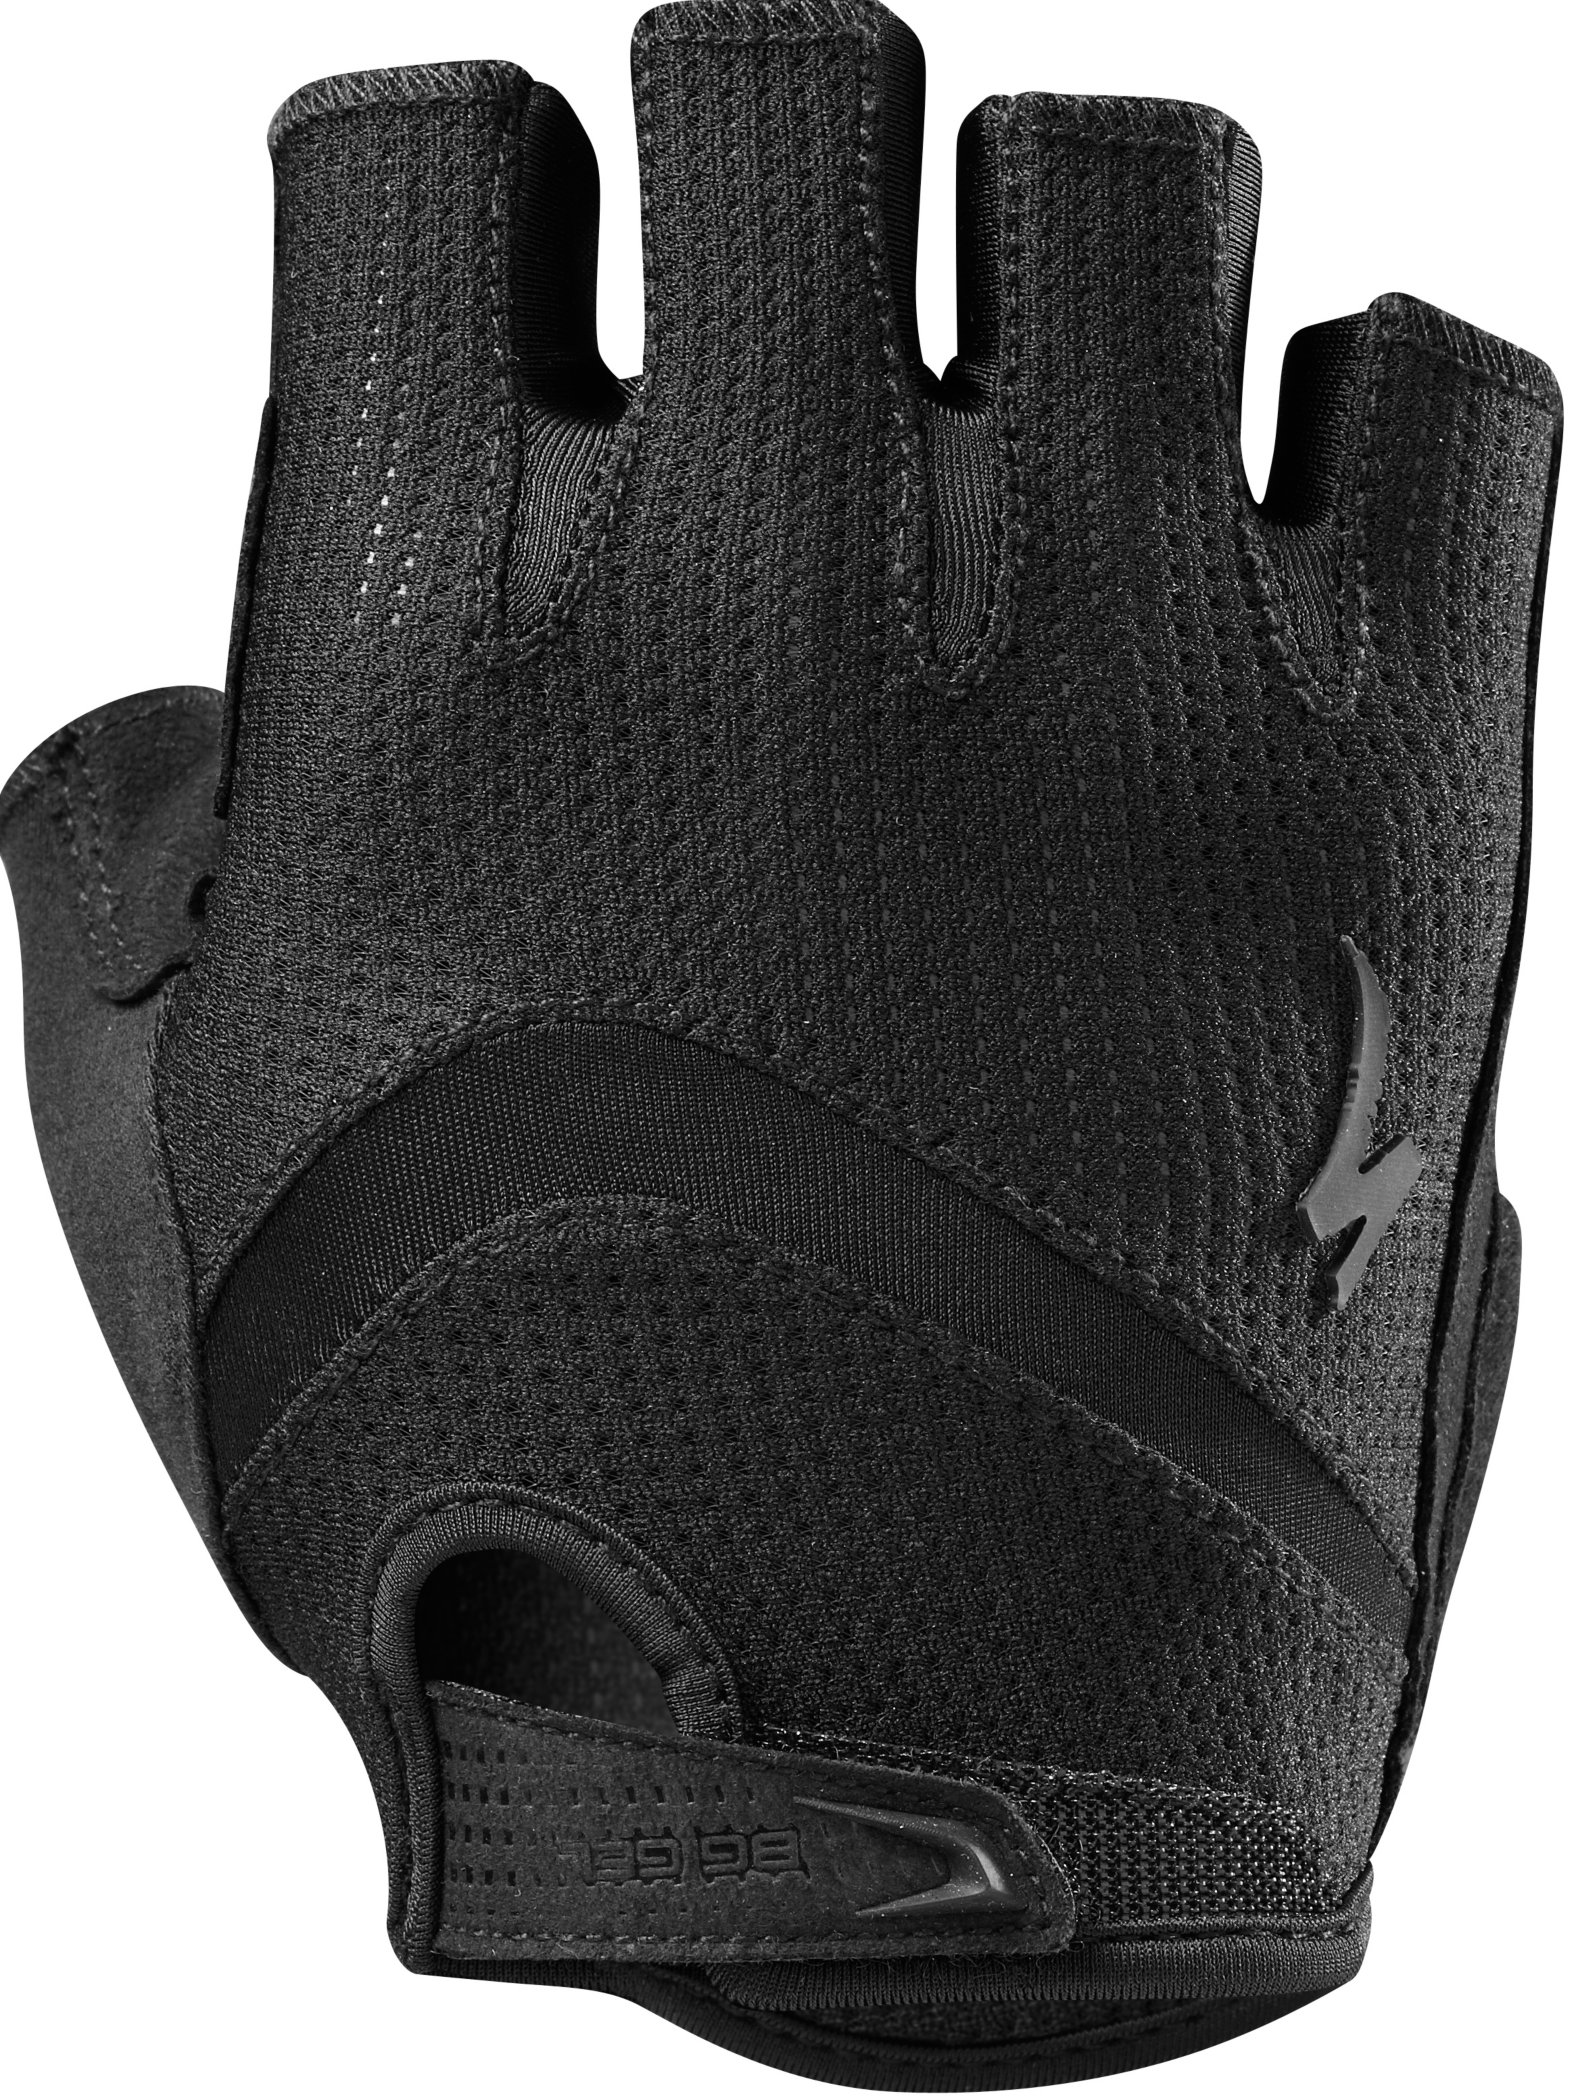 SPECIALIZED BG GEL GLOVE SF BLK/BLK S - Bikedreams & Dustbikes